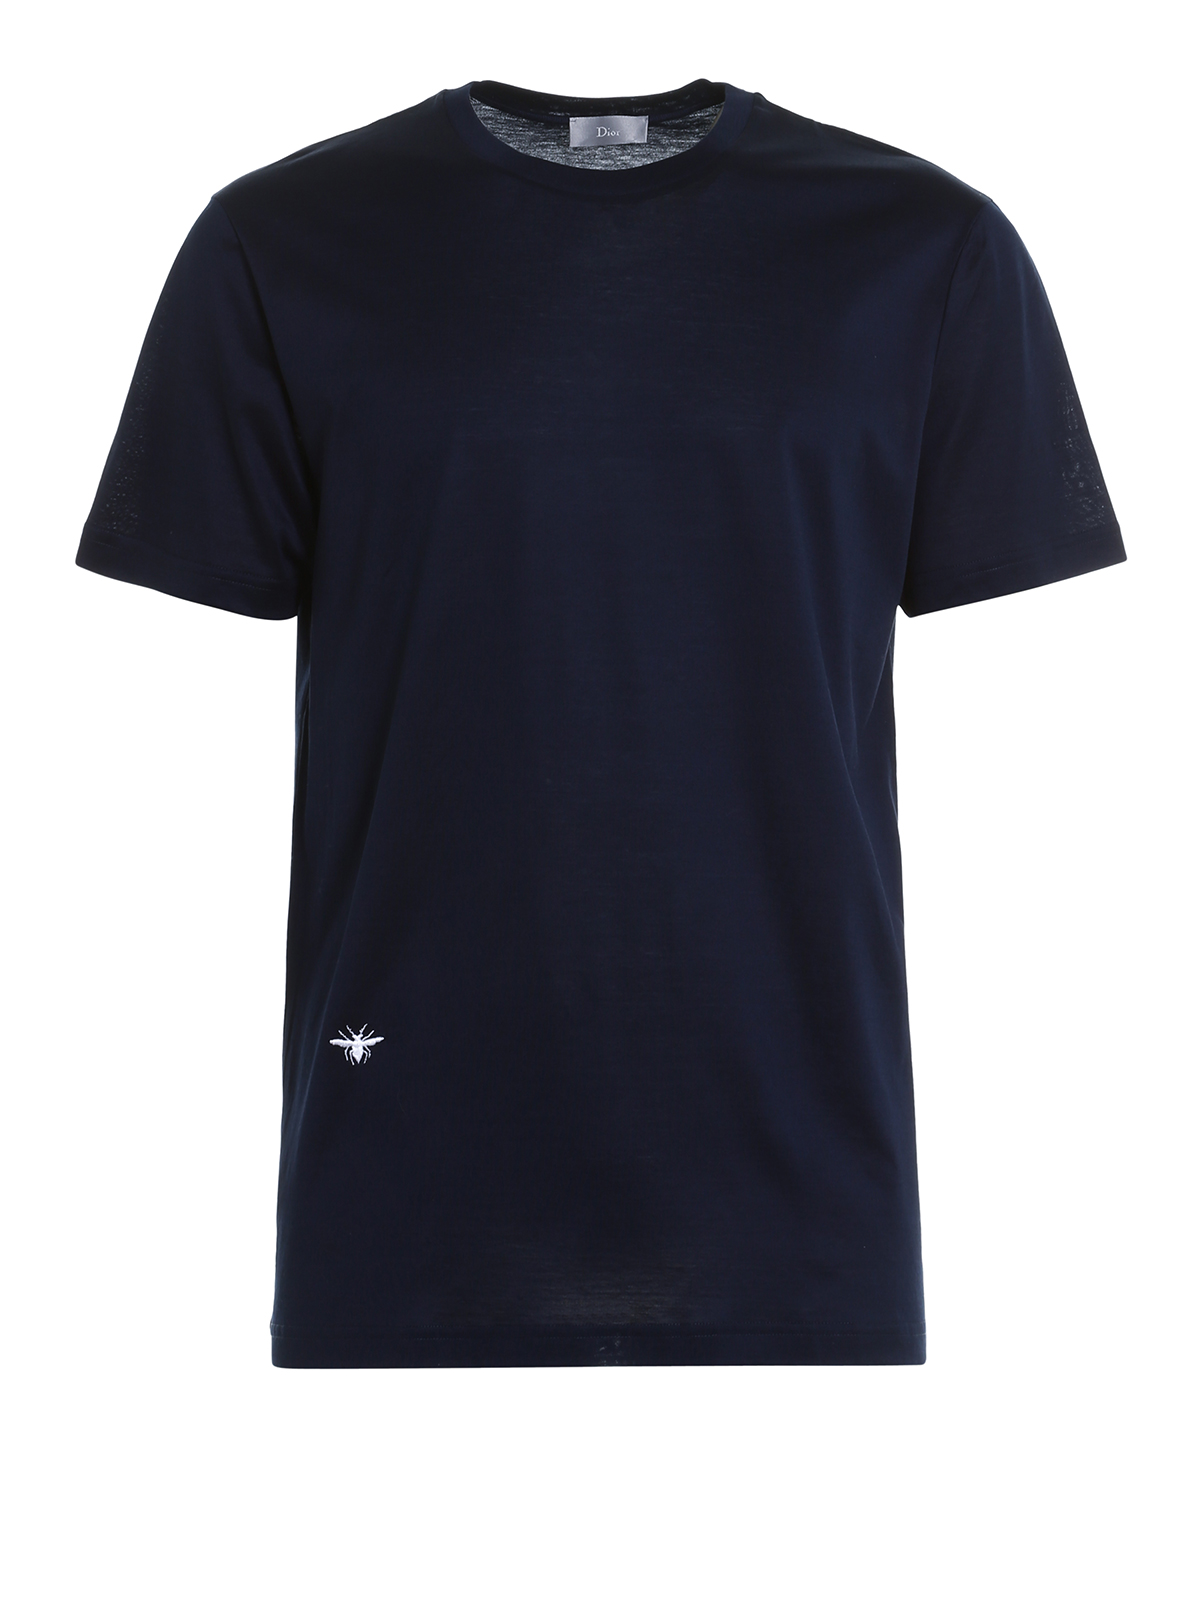 Embroidered bee t shirt by dior shirts ikrix